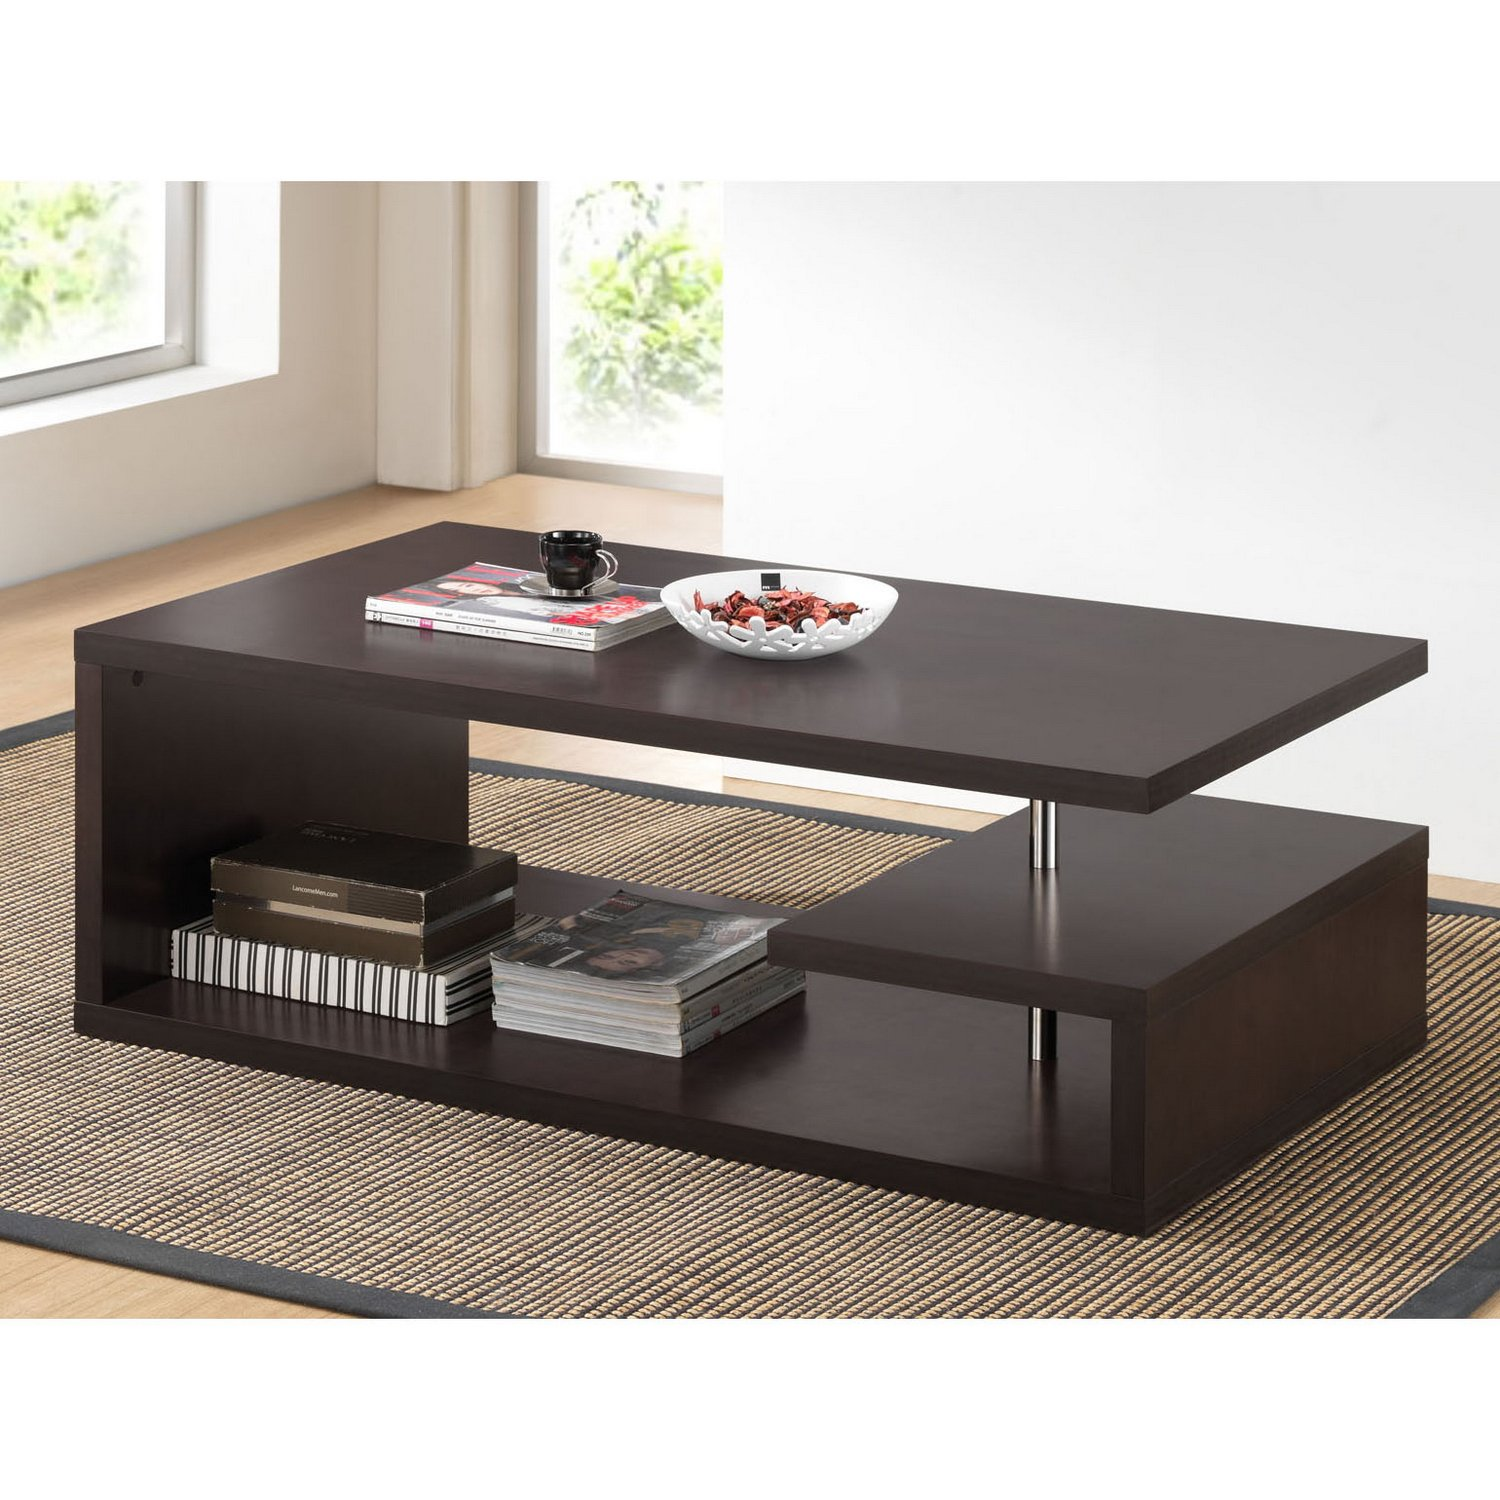 Superbe Amazon.com: Baxton Studio Lindy Modern Coffee Table, Dark Brown: Kitchen U0026  Dining